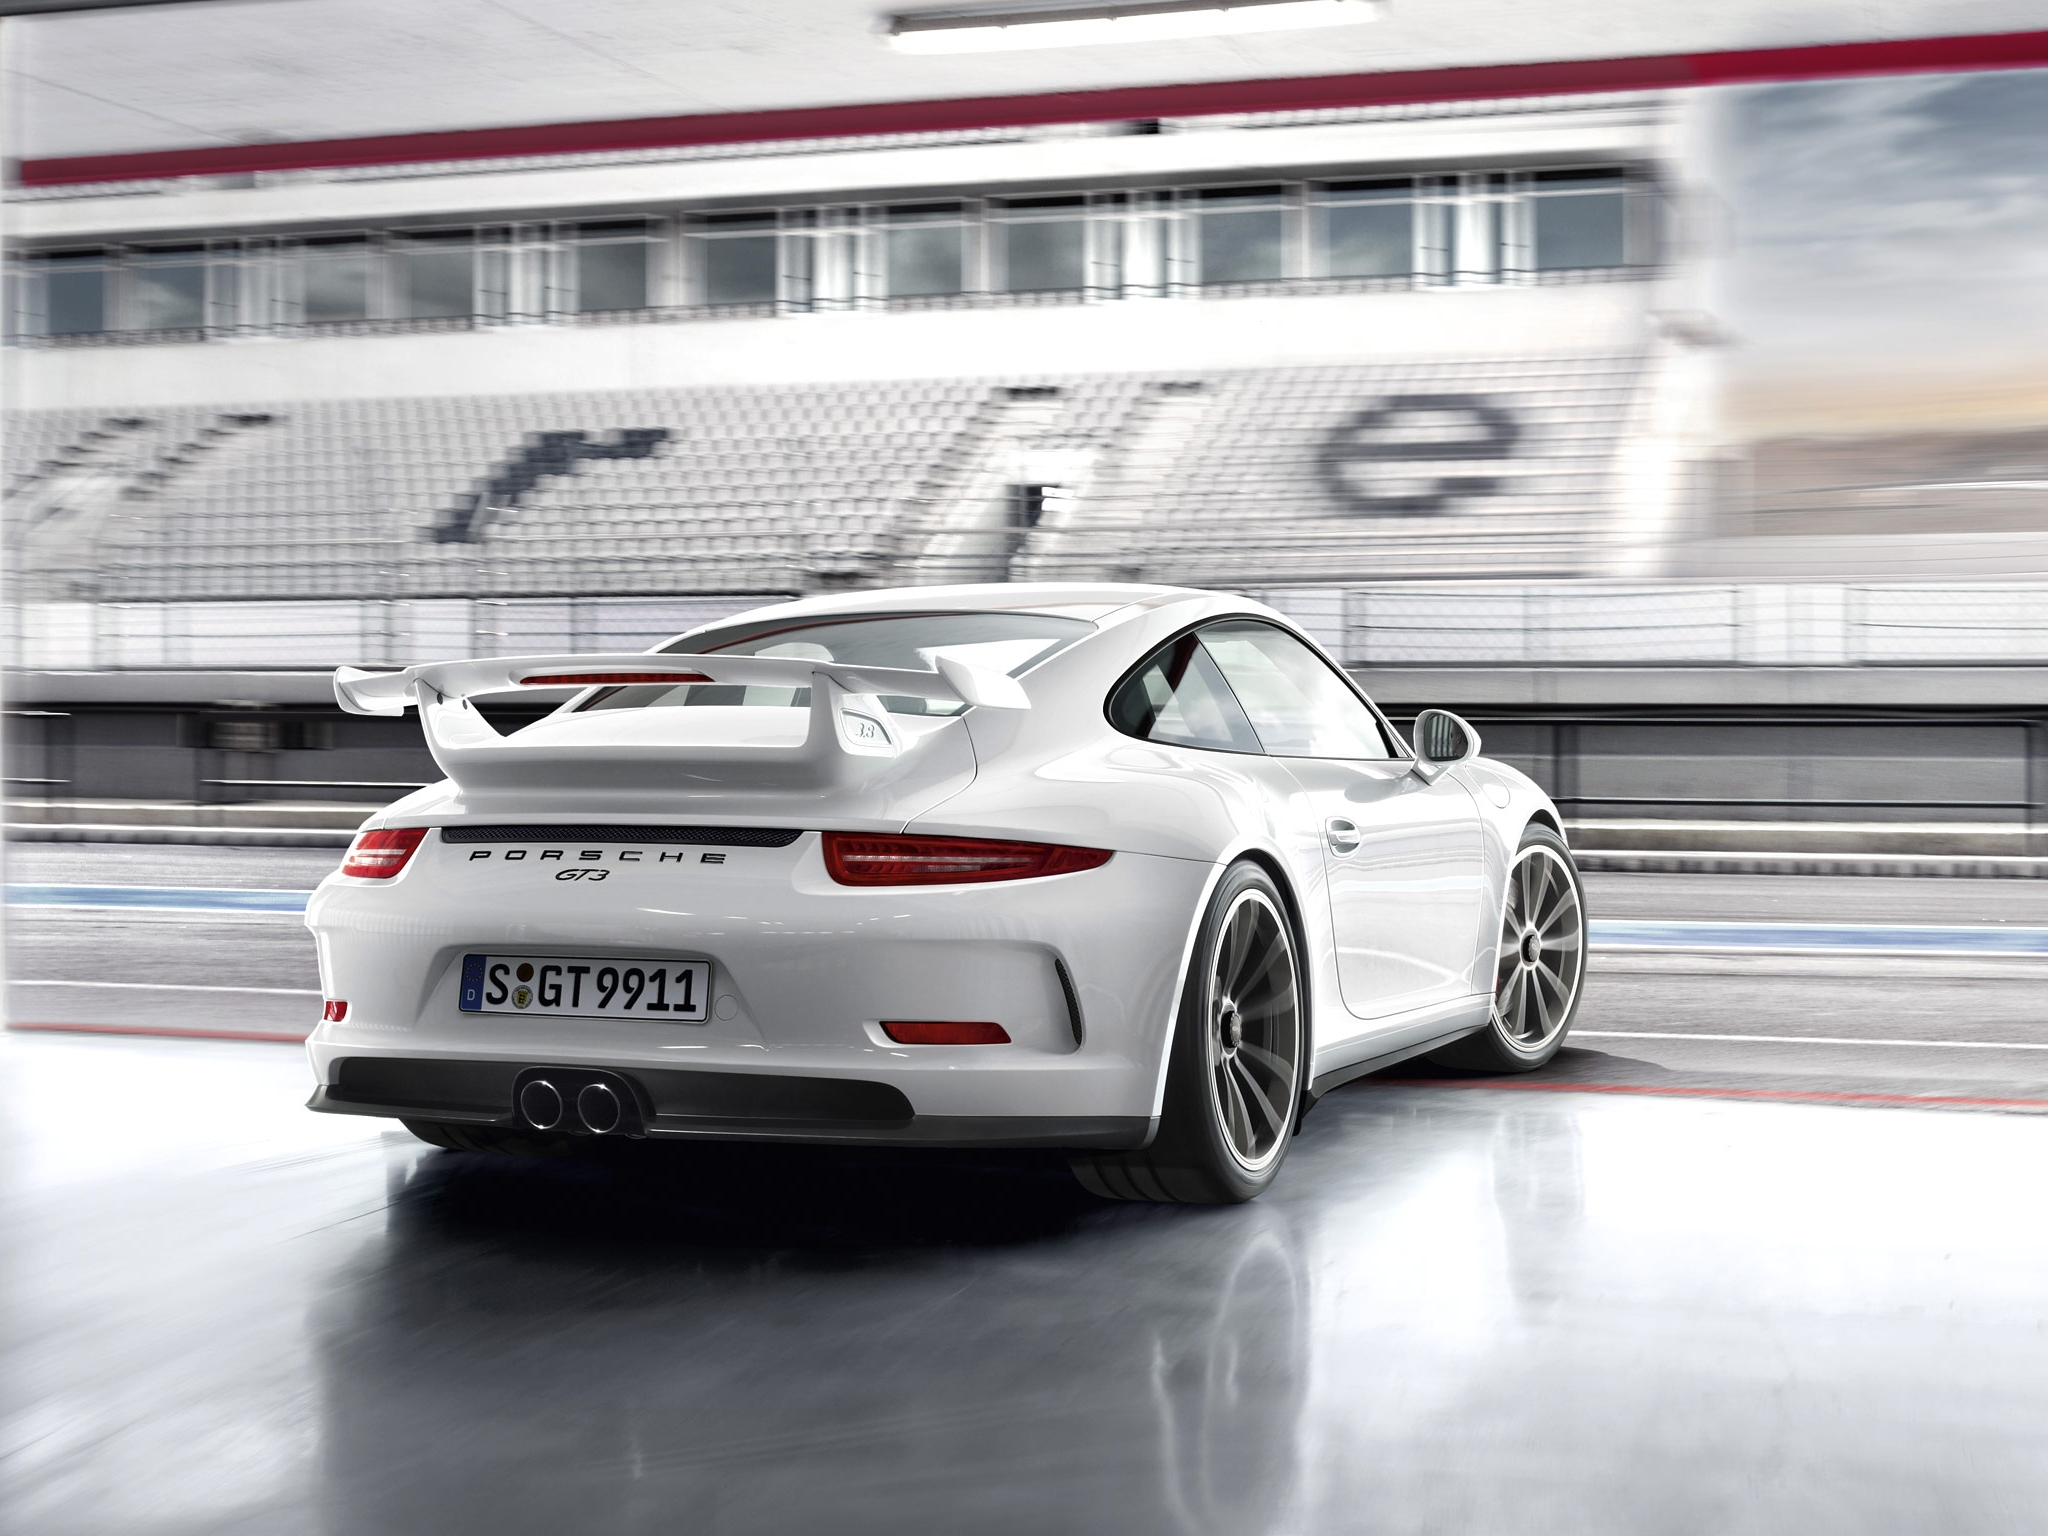 2014 Porsche 911 Gt3 991 Supercar S Wallpaper 2048x1536